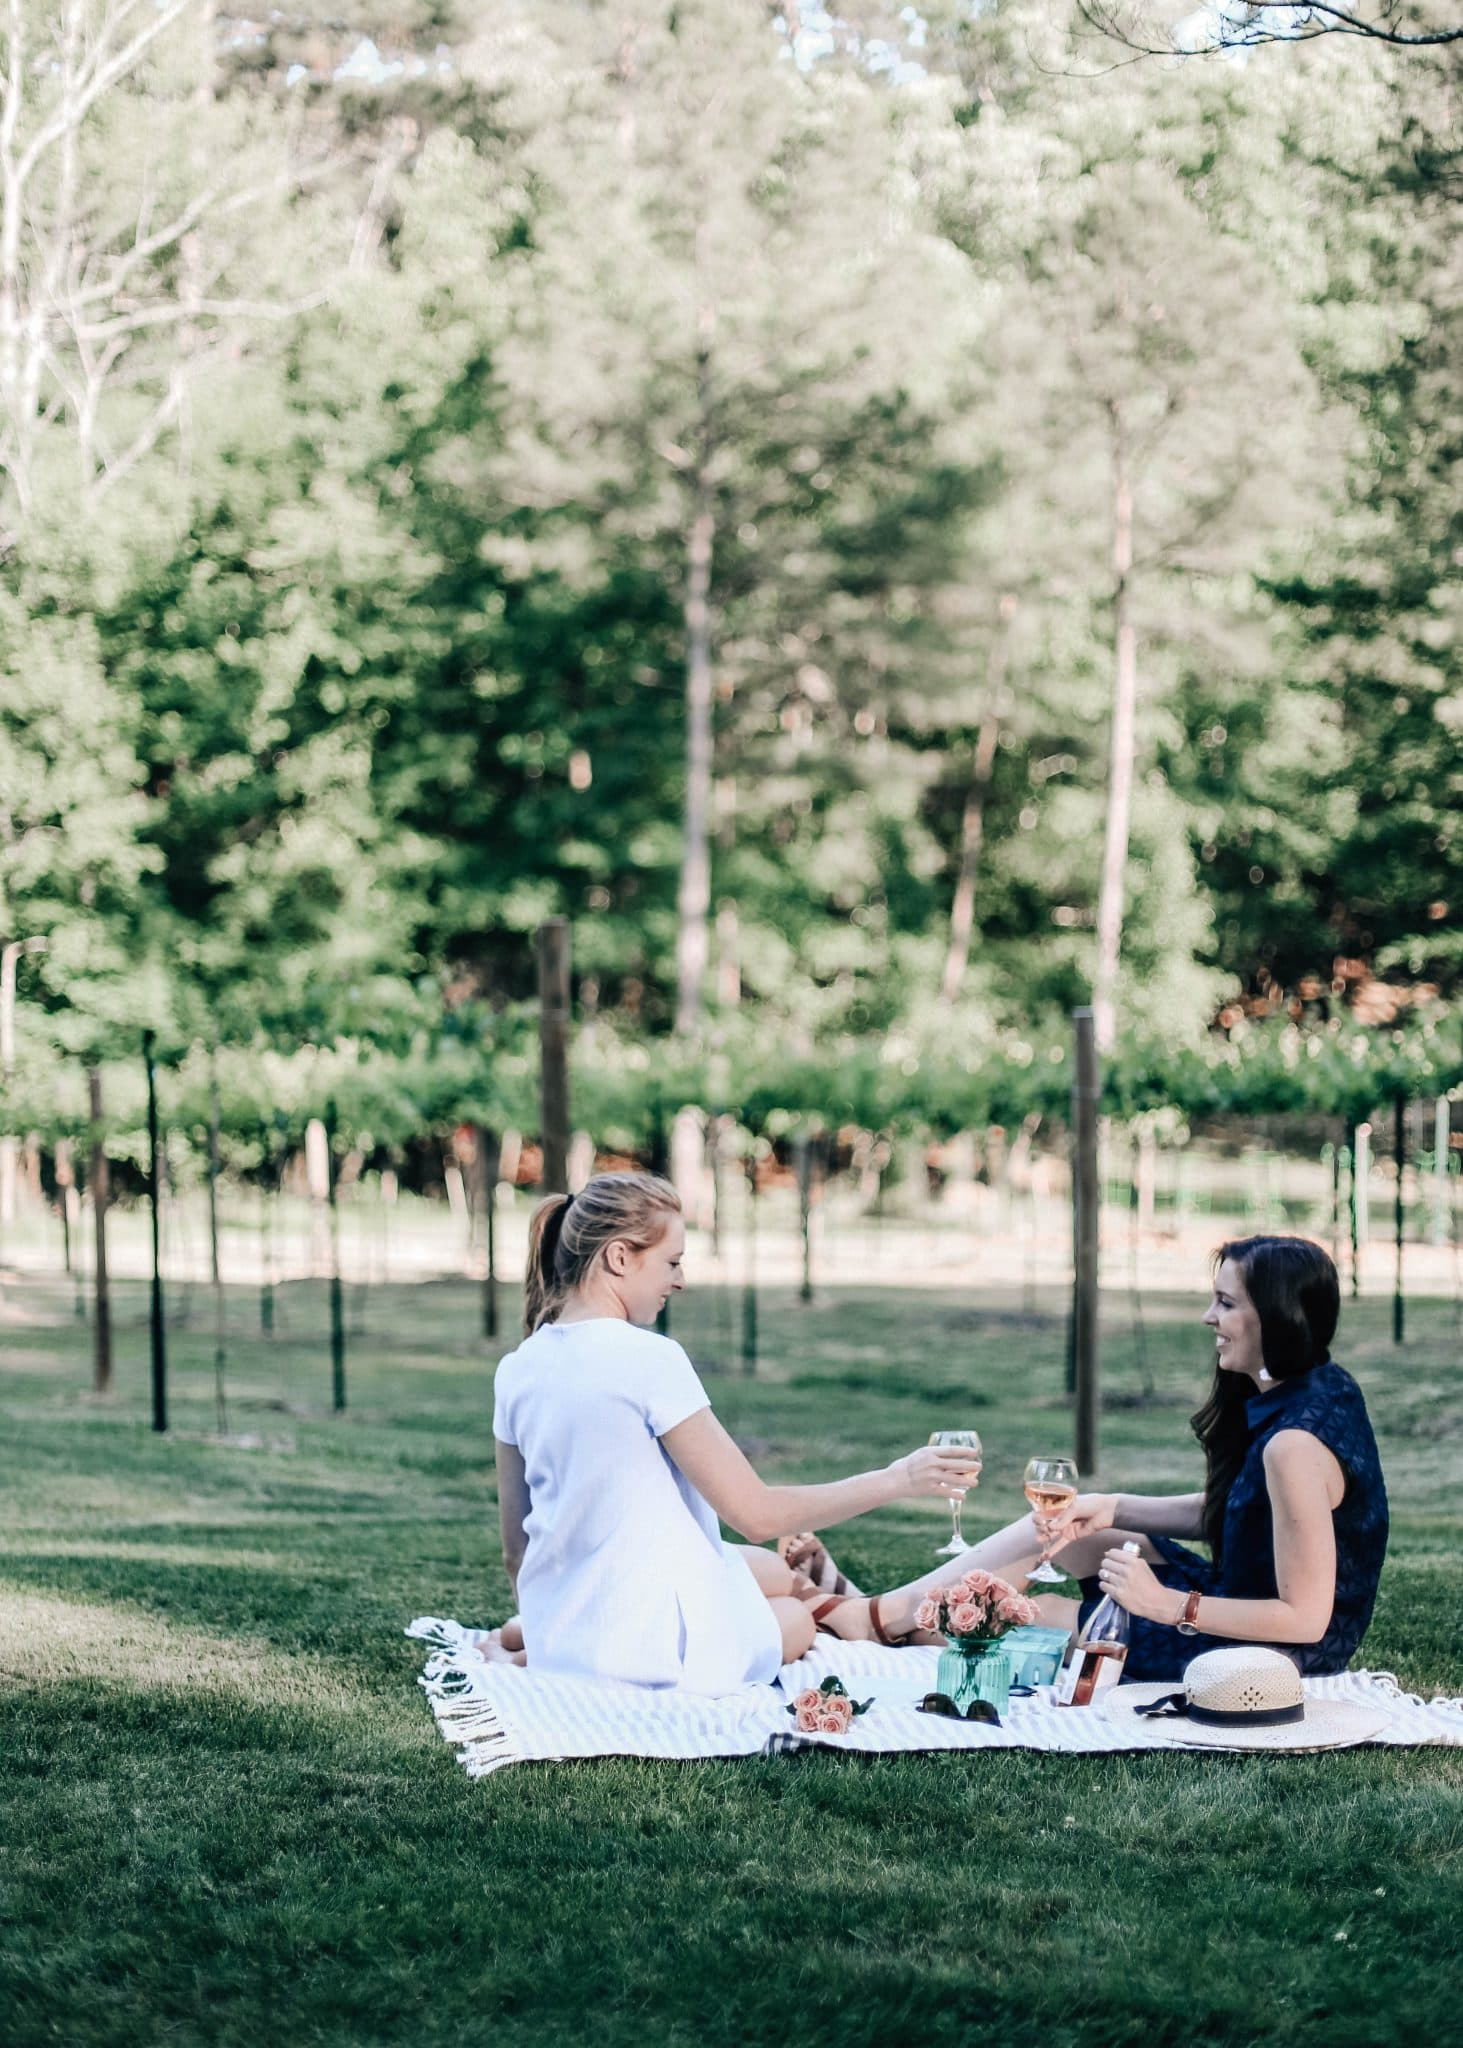 jadot rose, summer picnic photography, pretty in the pines, nc blogger